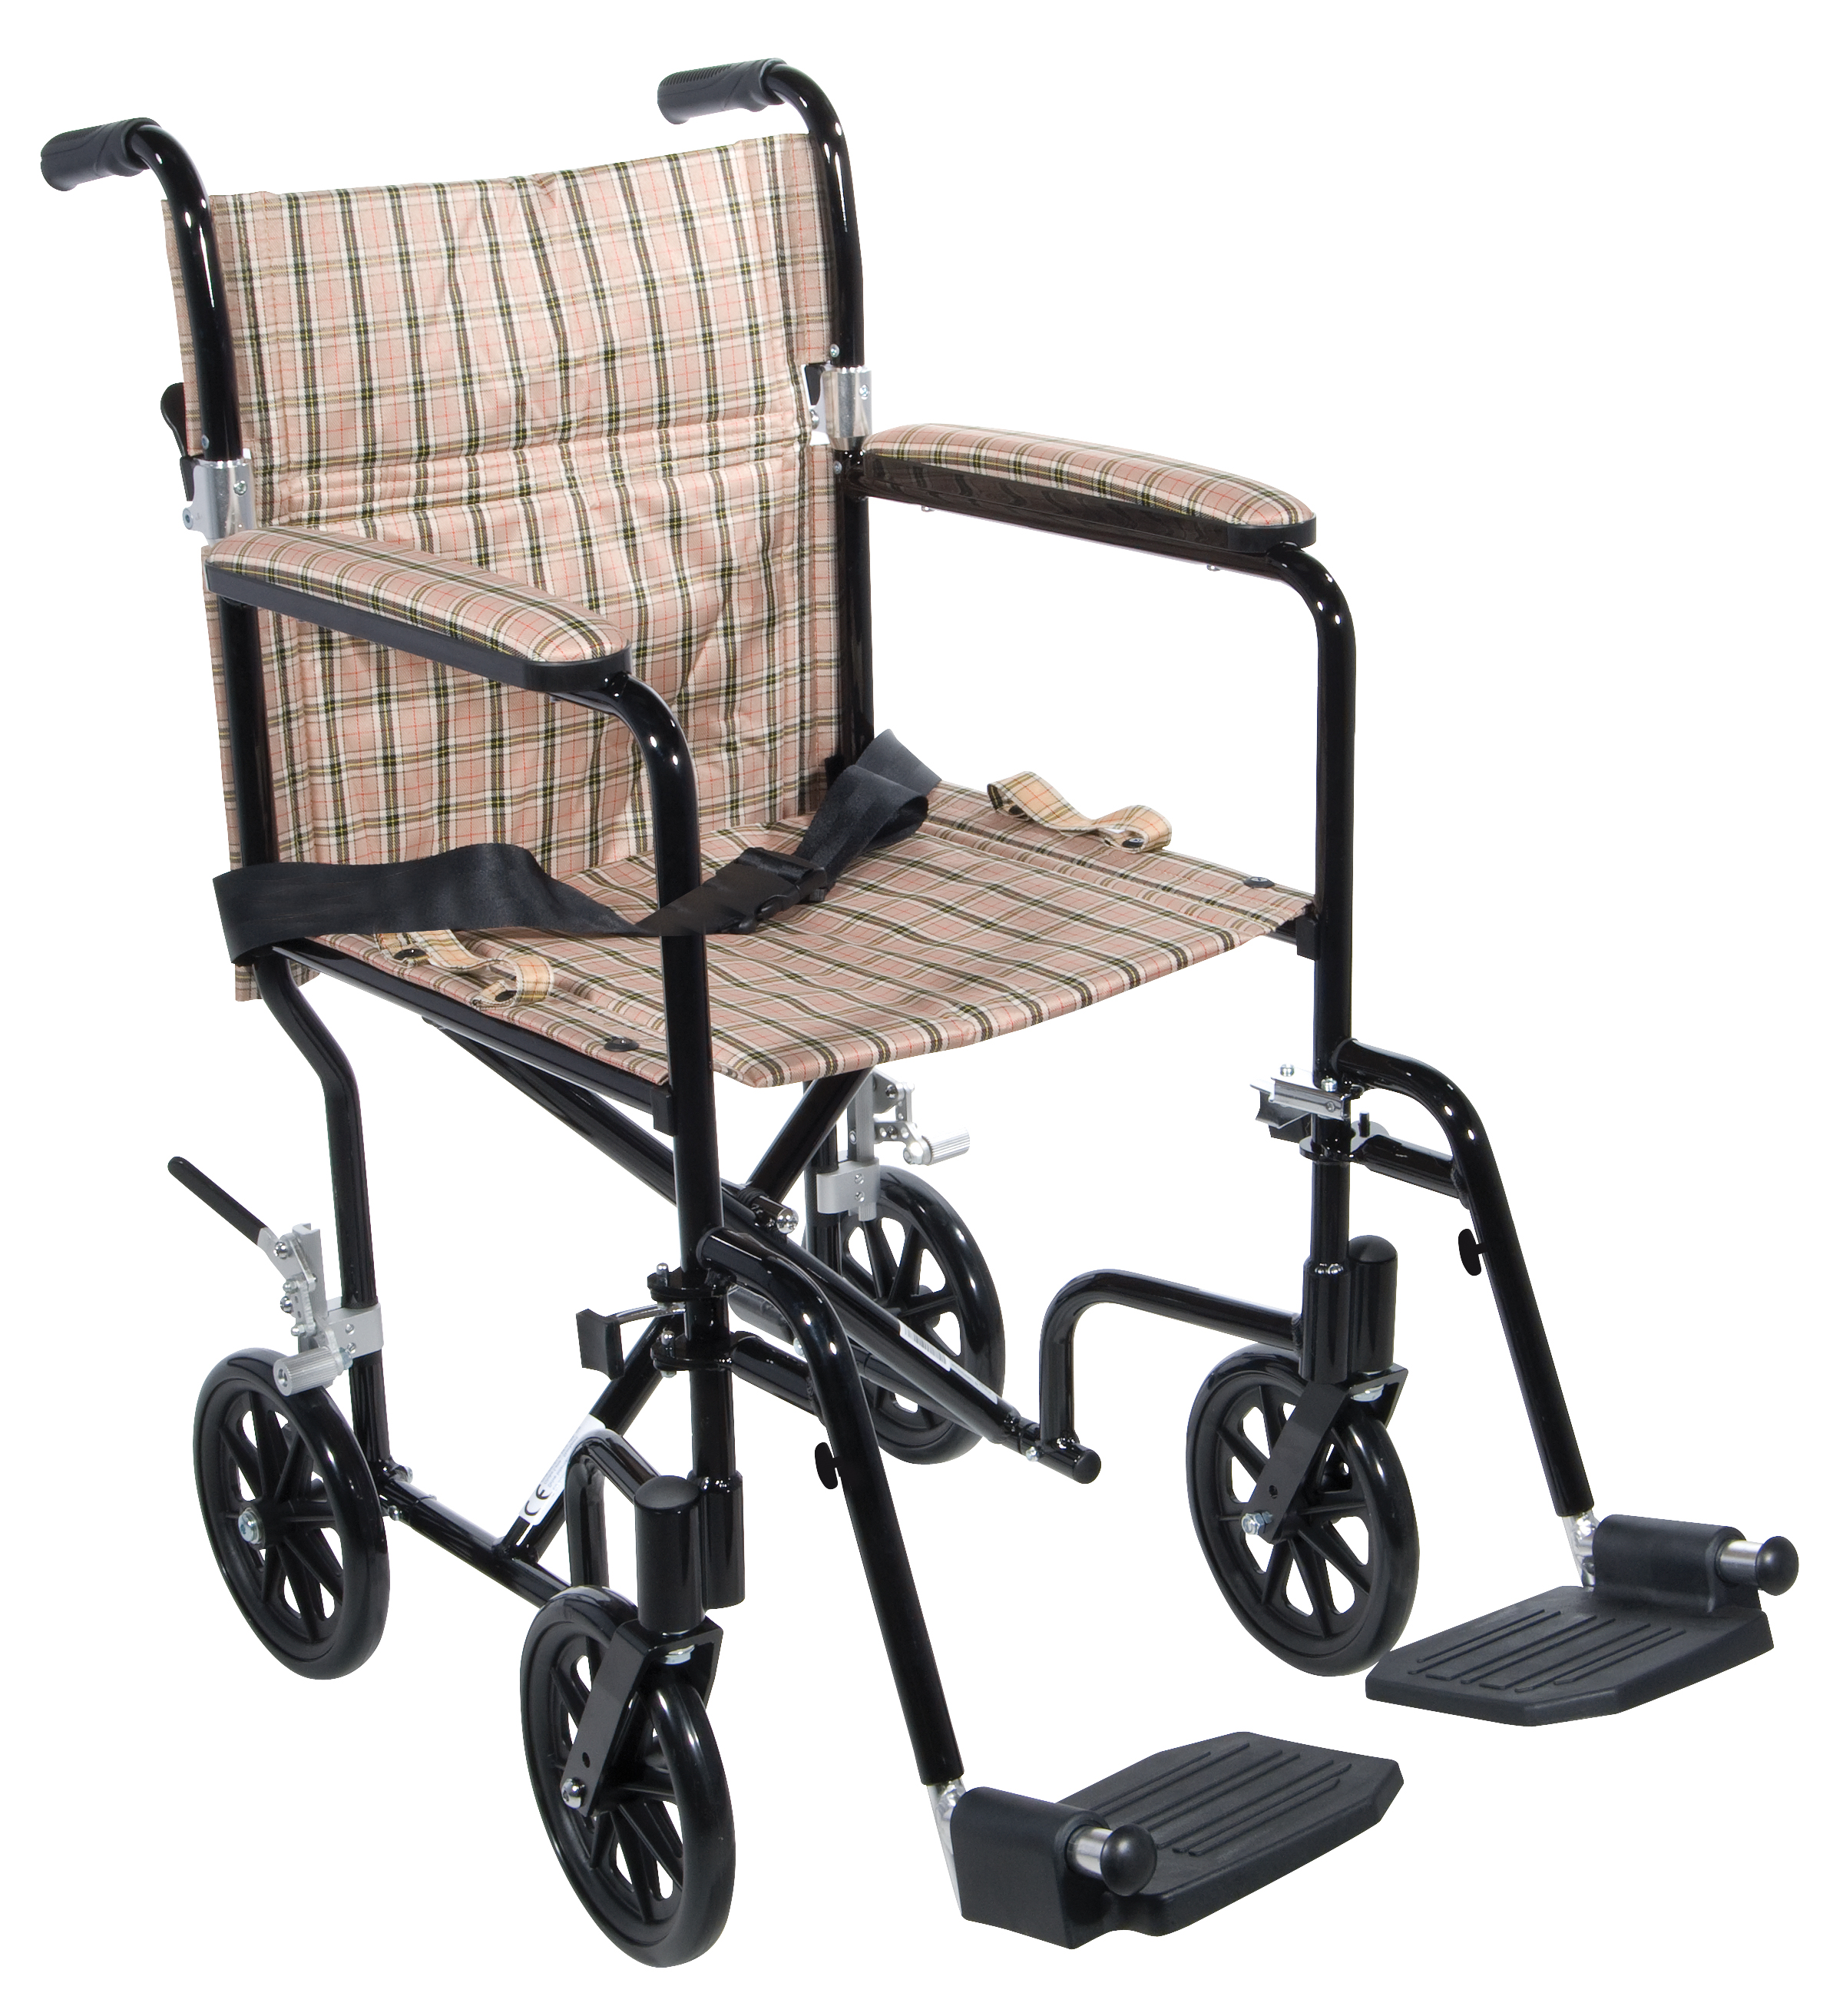 "Drive Medical Flyweight Lightweight Folding Transport Wheelchair, 19"", Black Frame, Tan Plaid Upholstery"